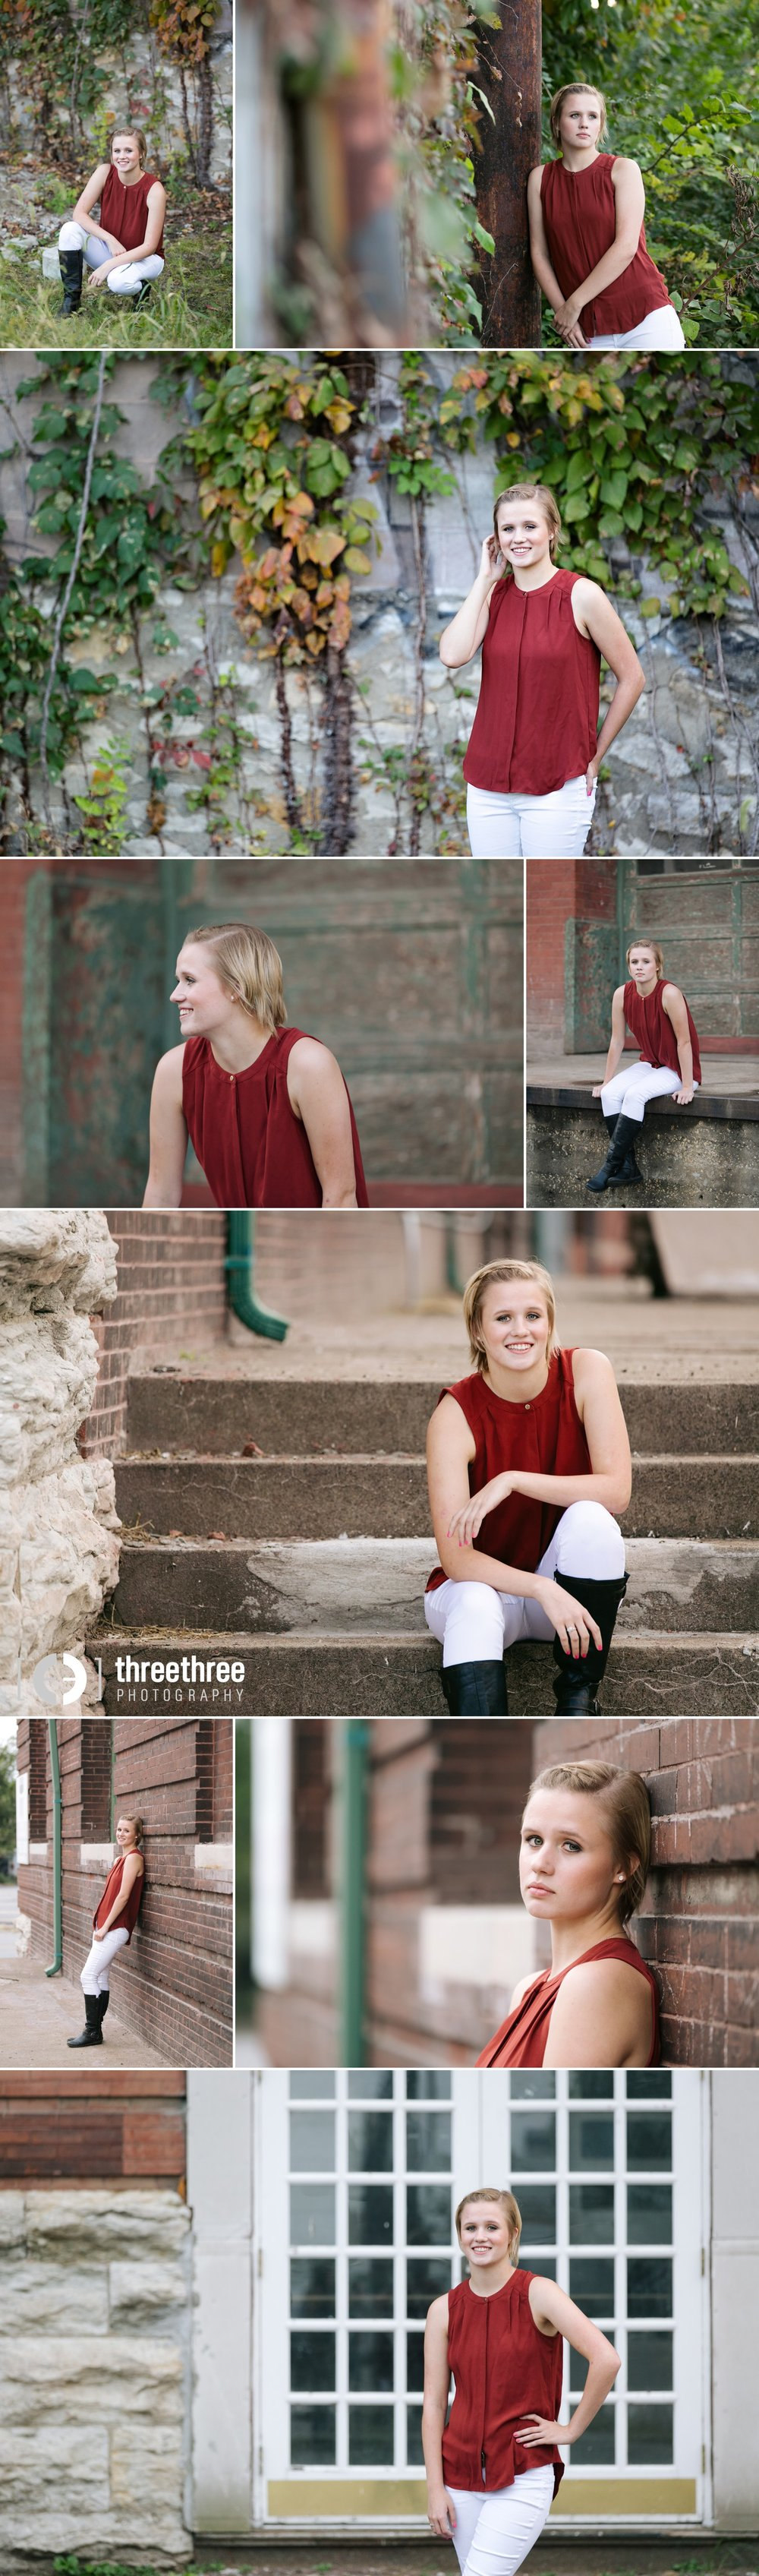 Liz_Kansas City Senior Pictures 2.jpg